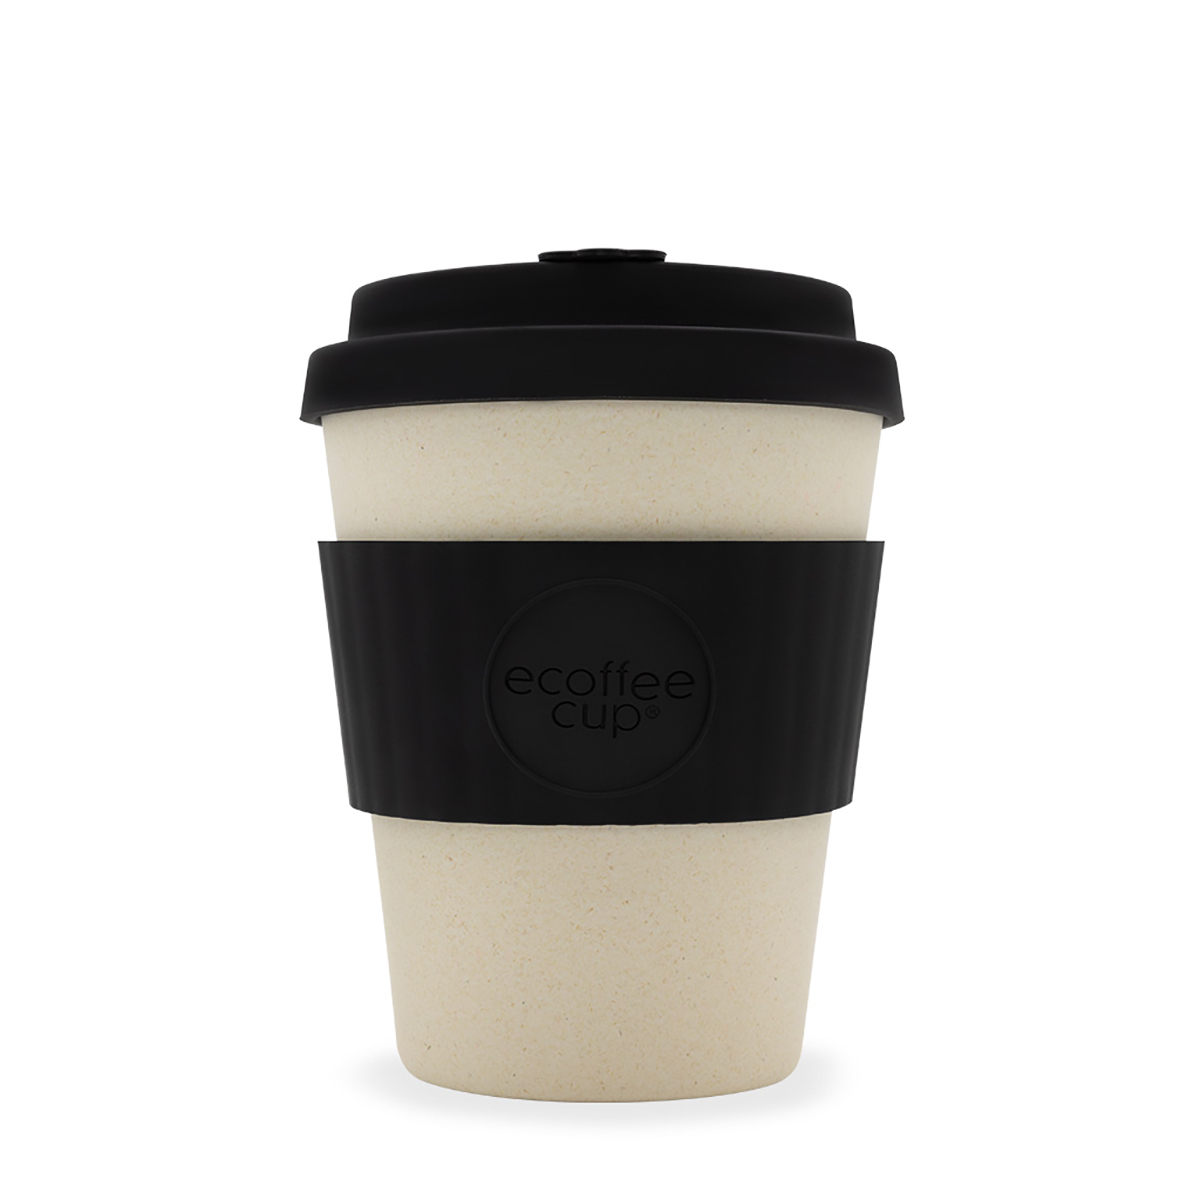 Ecoffee Eco 12oz Black Nature Cup Ref 0303028